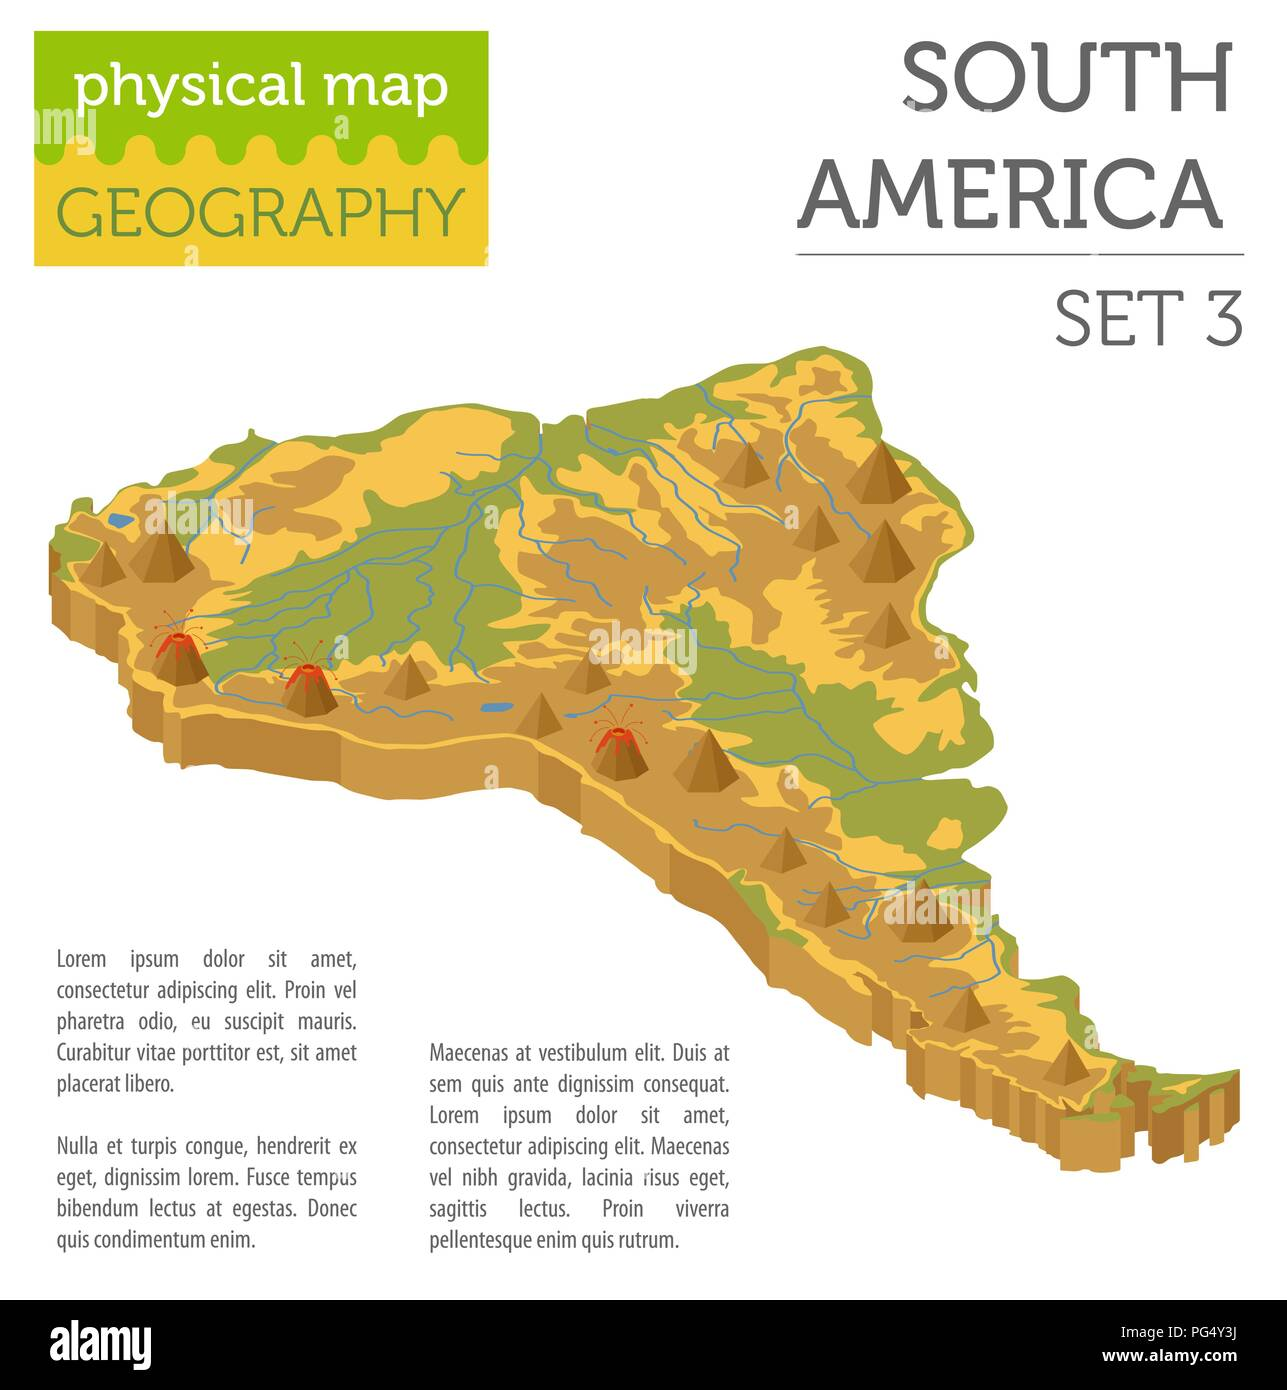 Isometric 3d South America physical map elements. Build your own ...